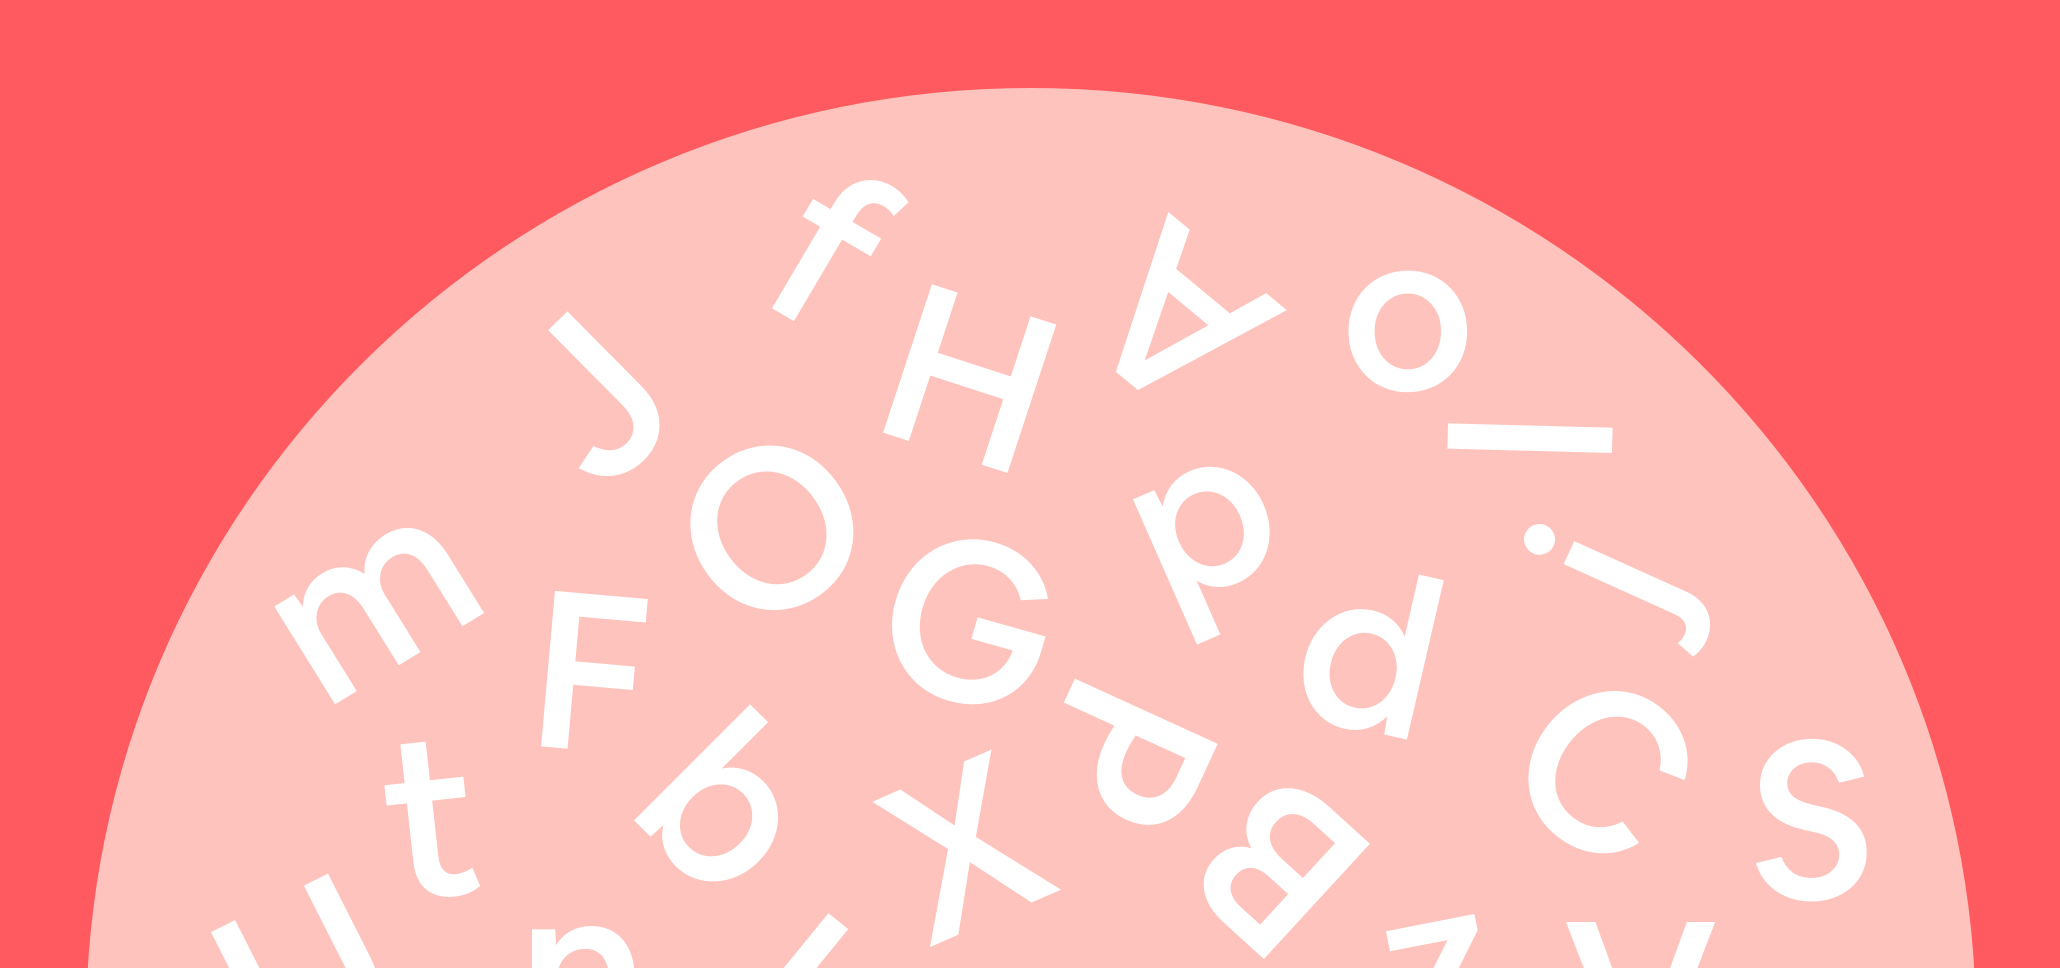 Airbnb Cereal - A new typeface that takes you from button to